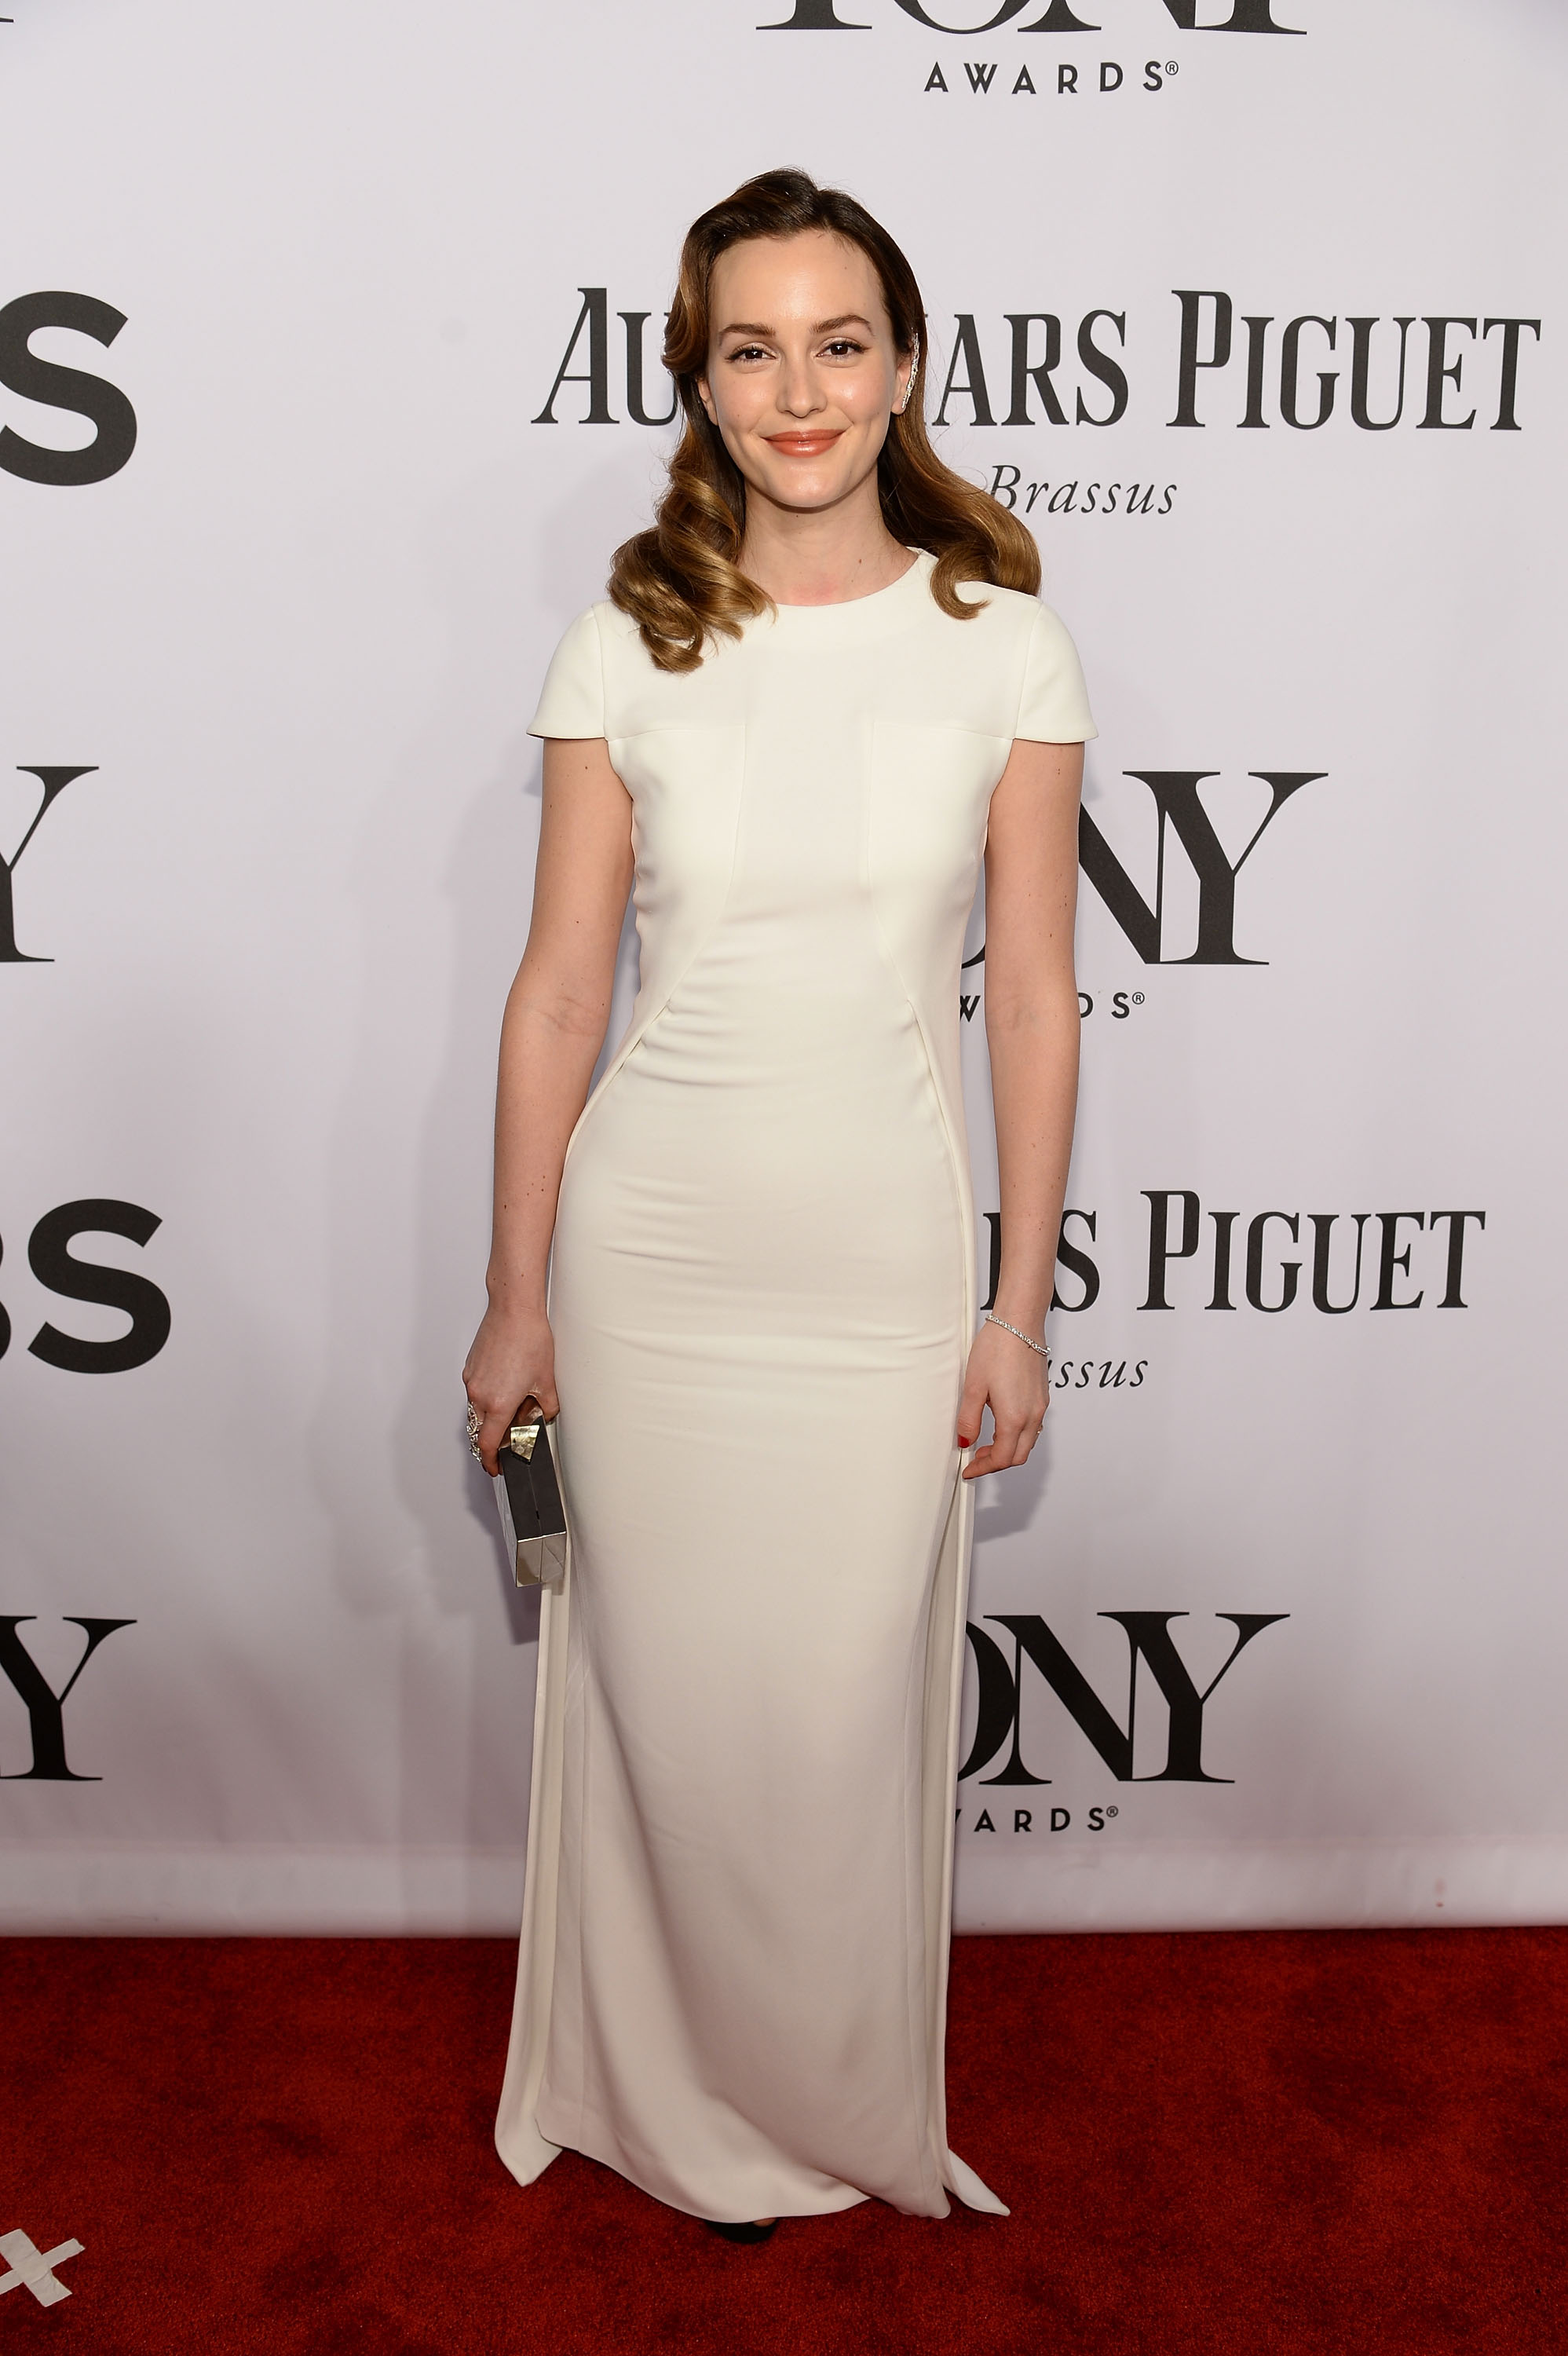 Actress Leighton Meester attends the 68th Annual Tony Awards at Radio City Music Hall on June 8, 2014 in New York City.